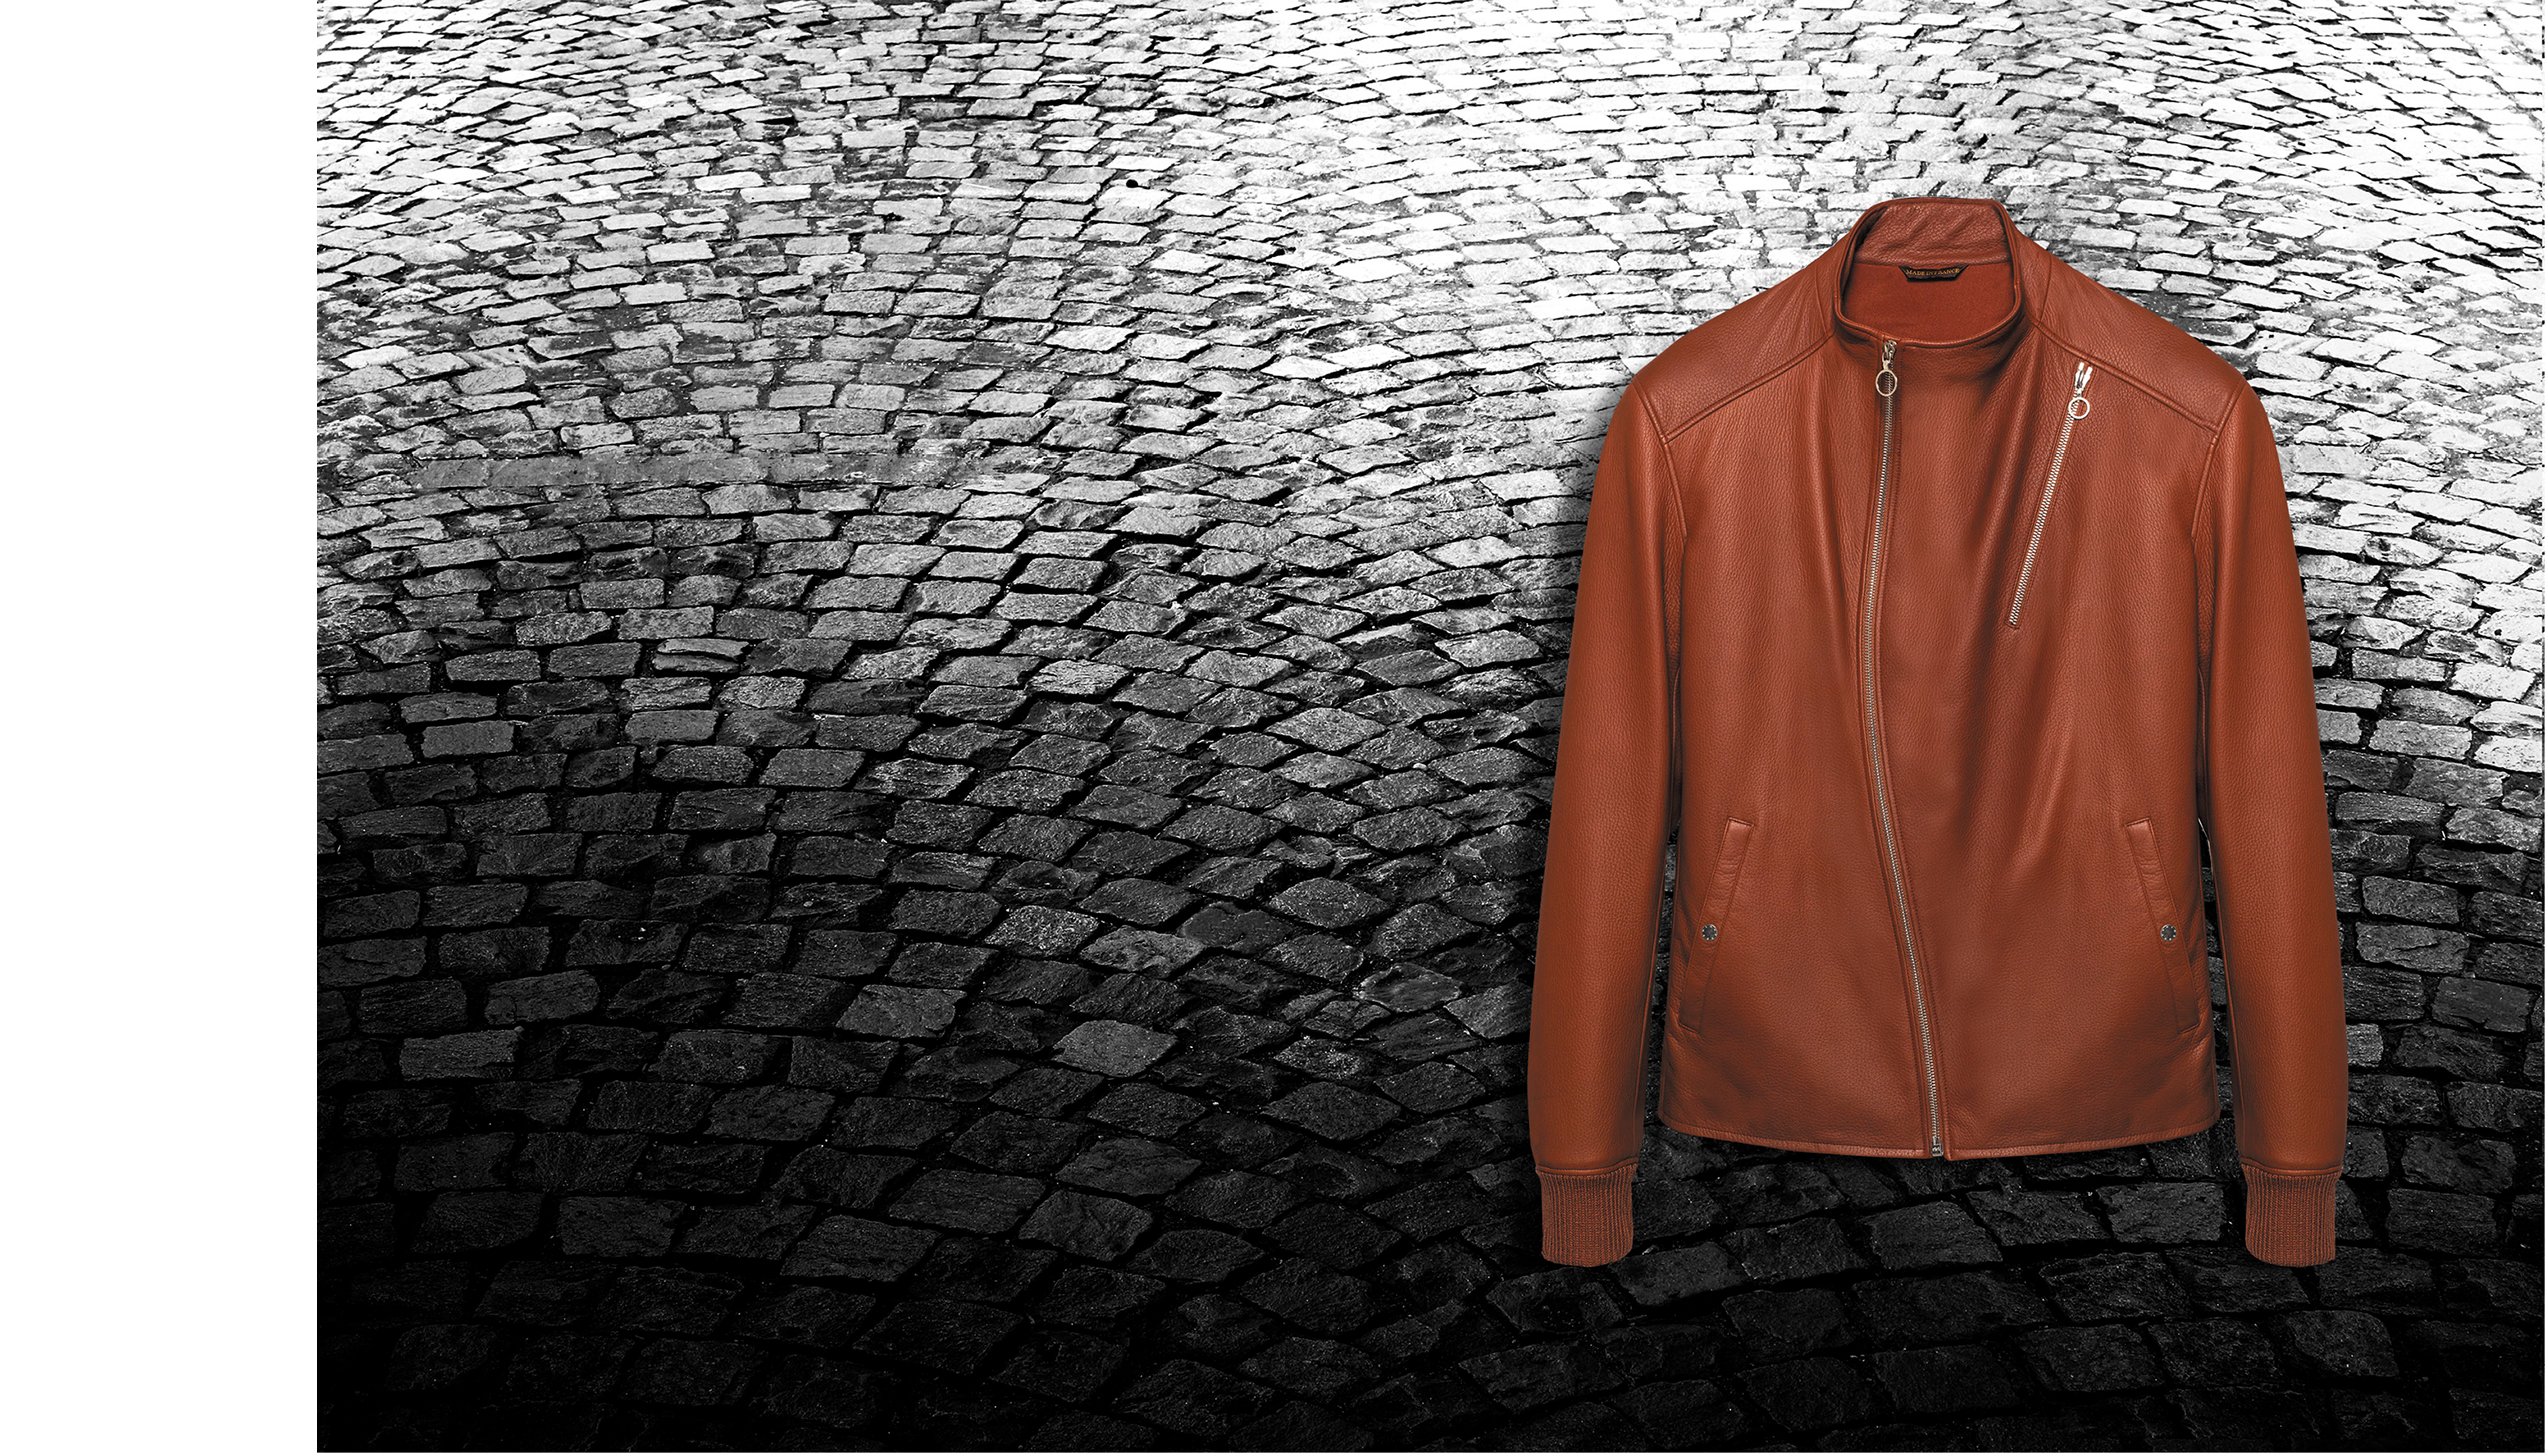 S3 jacket – Cobbler deer leather, lined with washed silk